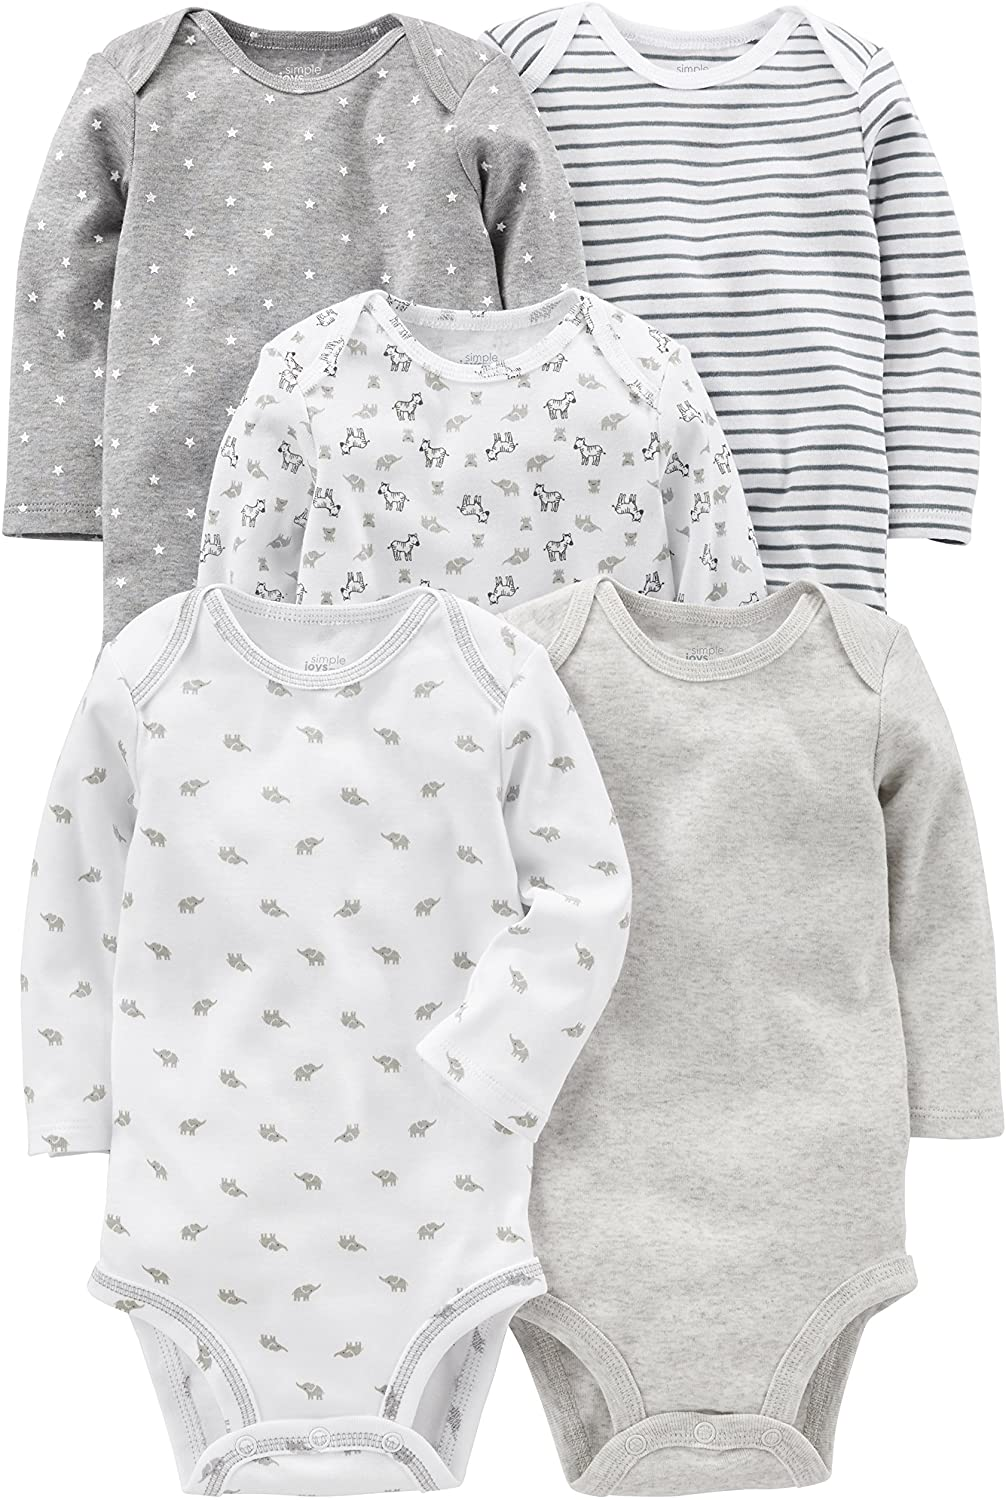 Pacco da 5 Simple Joys by Carters 5-Pack Neutral Long-Sleeve Bodysuit Bimbo 0-24